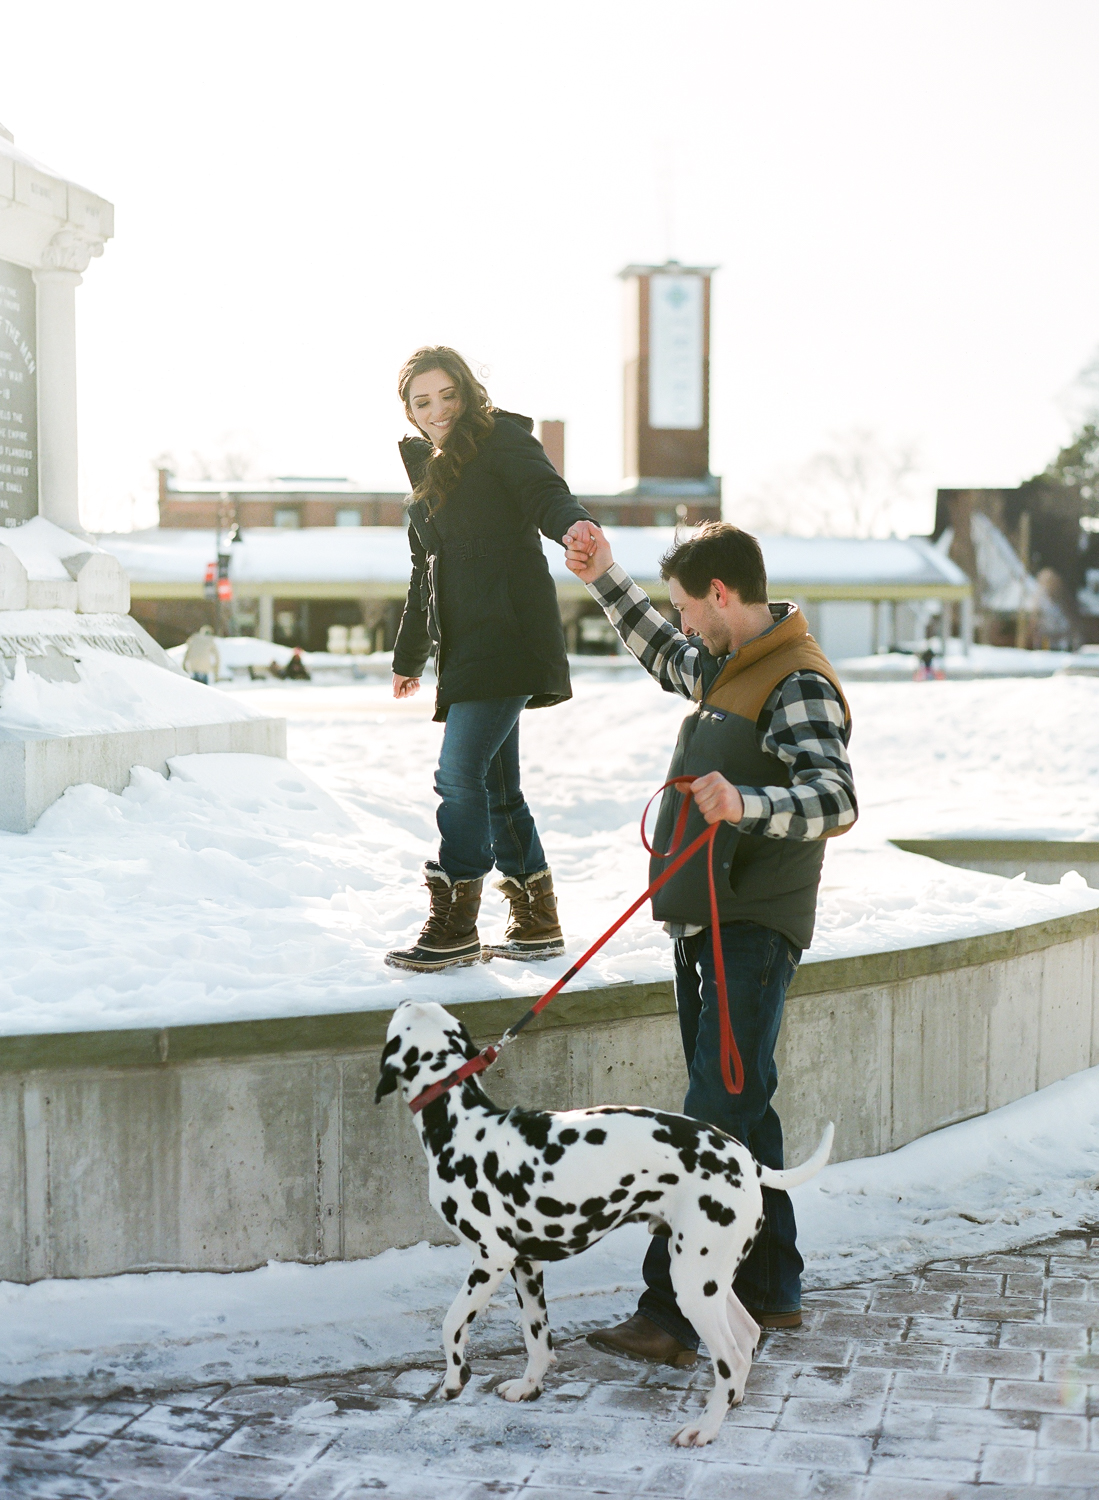 Halifax Wedding Photographer, winter engagement session, Truro Nova Scotia, Canadian Engagement Session, Jacqueline Anne Photography, Dog in engagement session, Film Engagement Session